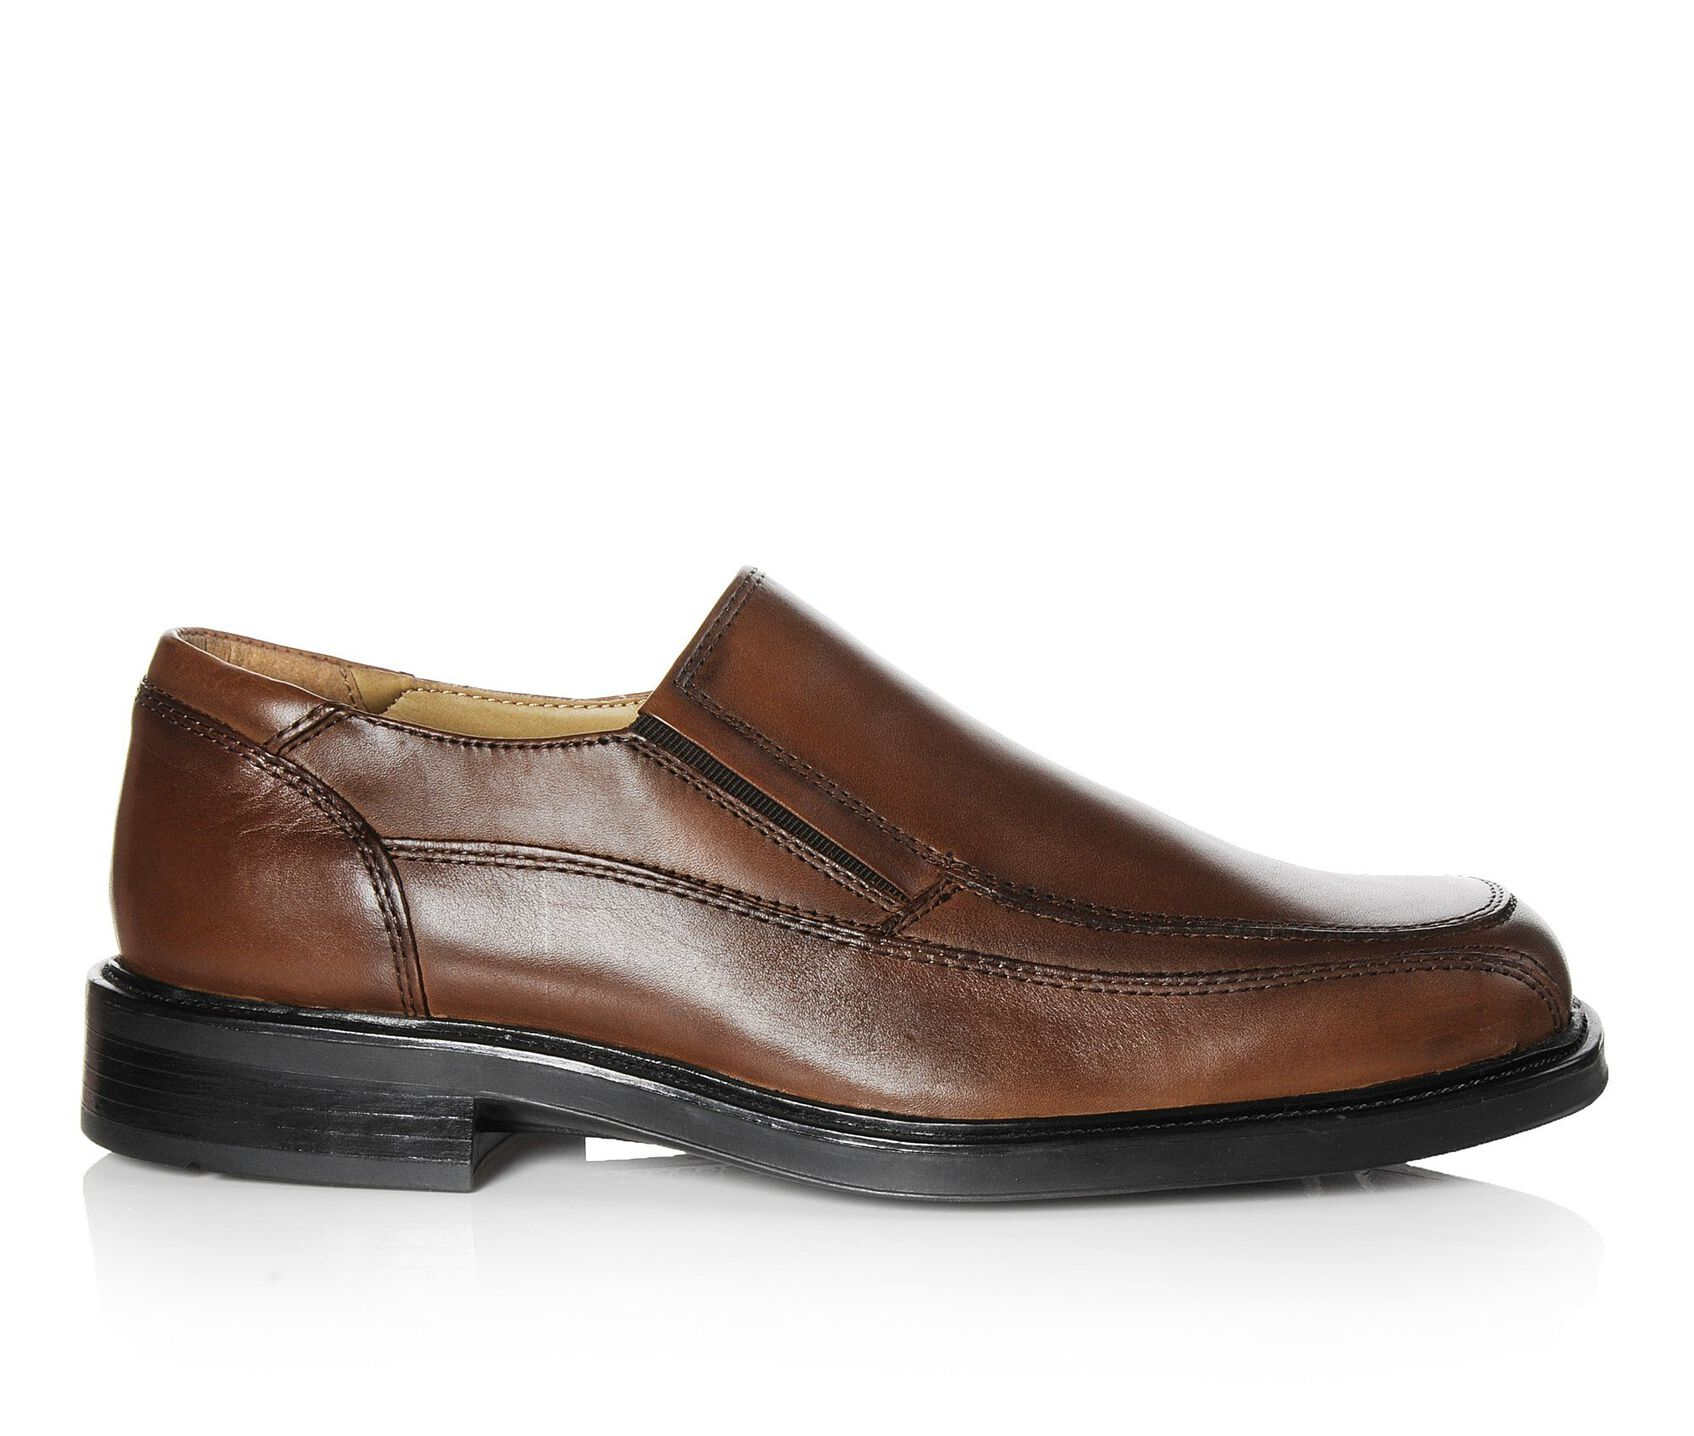 189fc7ca5fd85 Men's Dockers Proposal Dress Shoes | Shoe Carnival